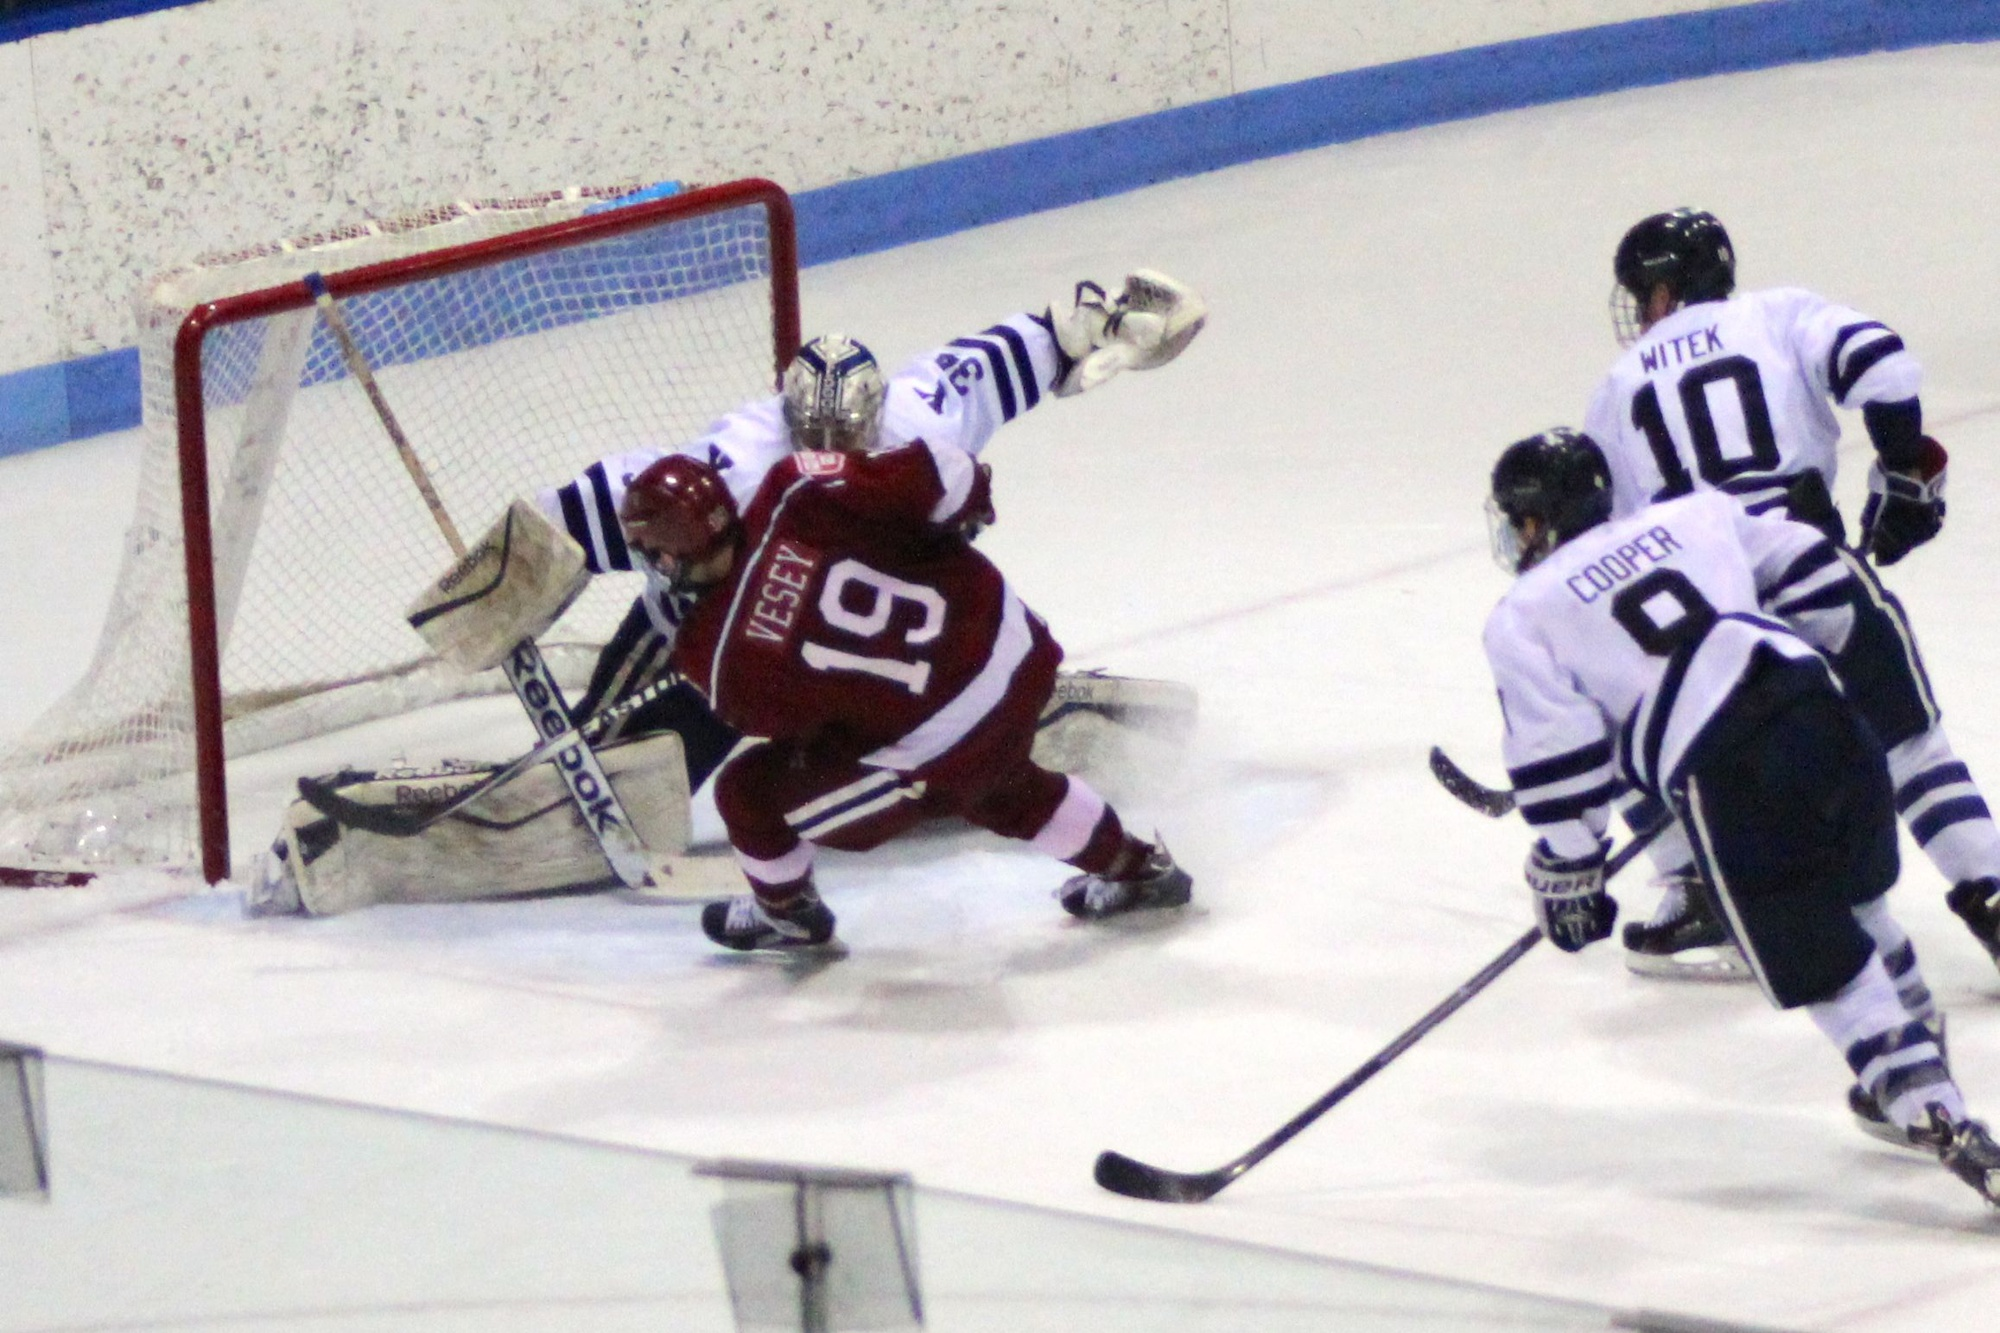 Jimmy Vesey's double-overtime winner in Game 3 of the ECAC Quarterfinals against Yale launched Harvard on a path towards the NCAA Tournament in 2015.